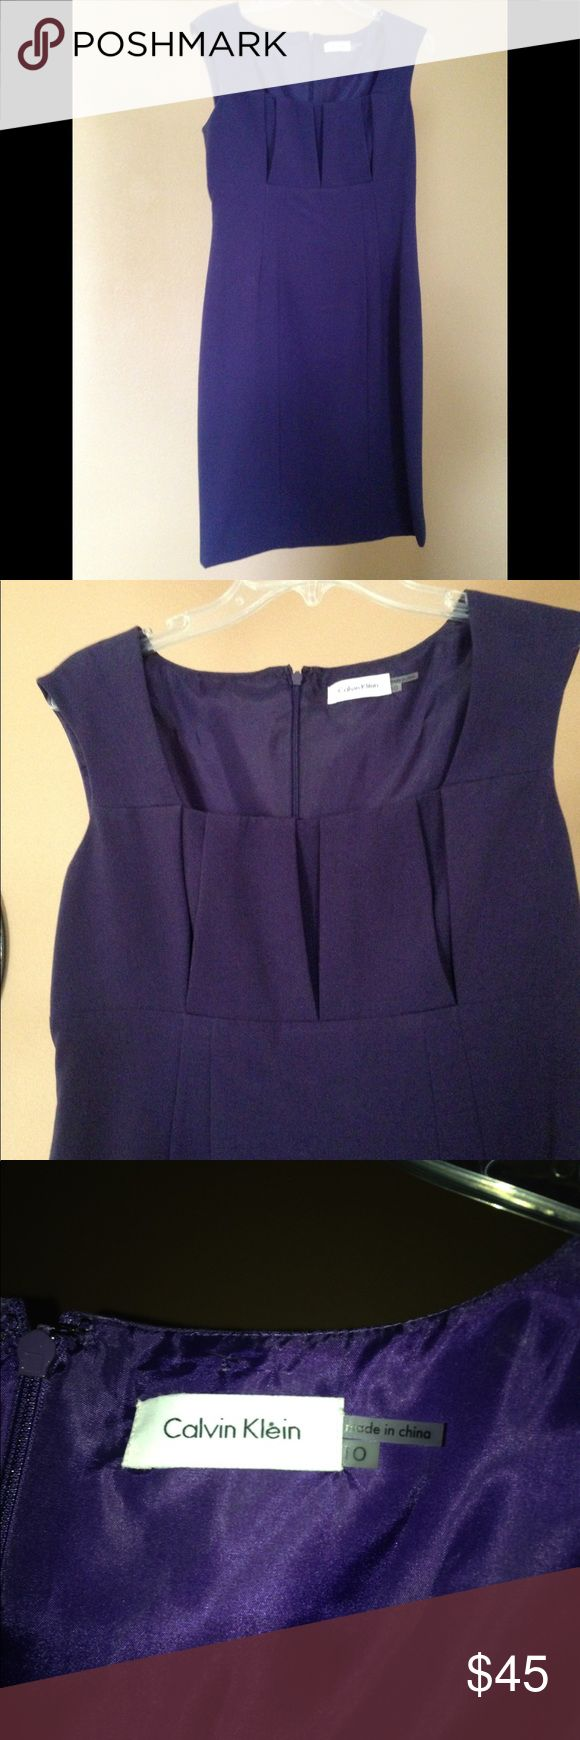 Calvin Klein Purple Dress Size 10 A beautiful, rich purple color. Dress is fully lined. The top cut of this dress is very flattering to your bust, so please be aware that it does show cleavage!! Tags removed as I bought it for an event, but chose something else. The back slit is still stitched closed. Perfect w/ a beautiful statement necklace! Calvin Klein Dresses Midi